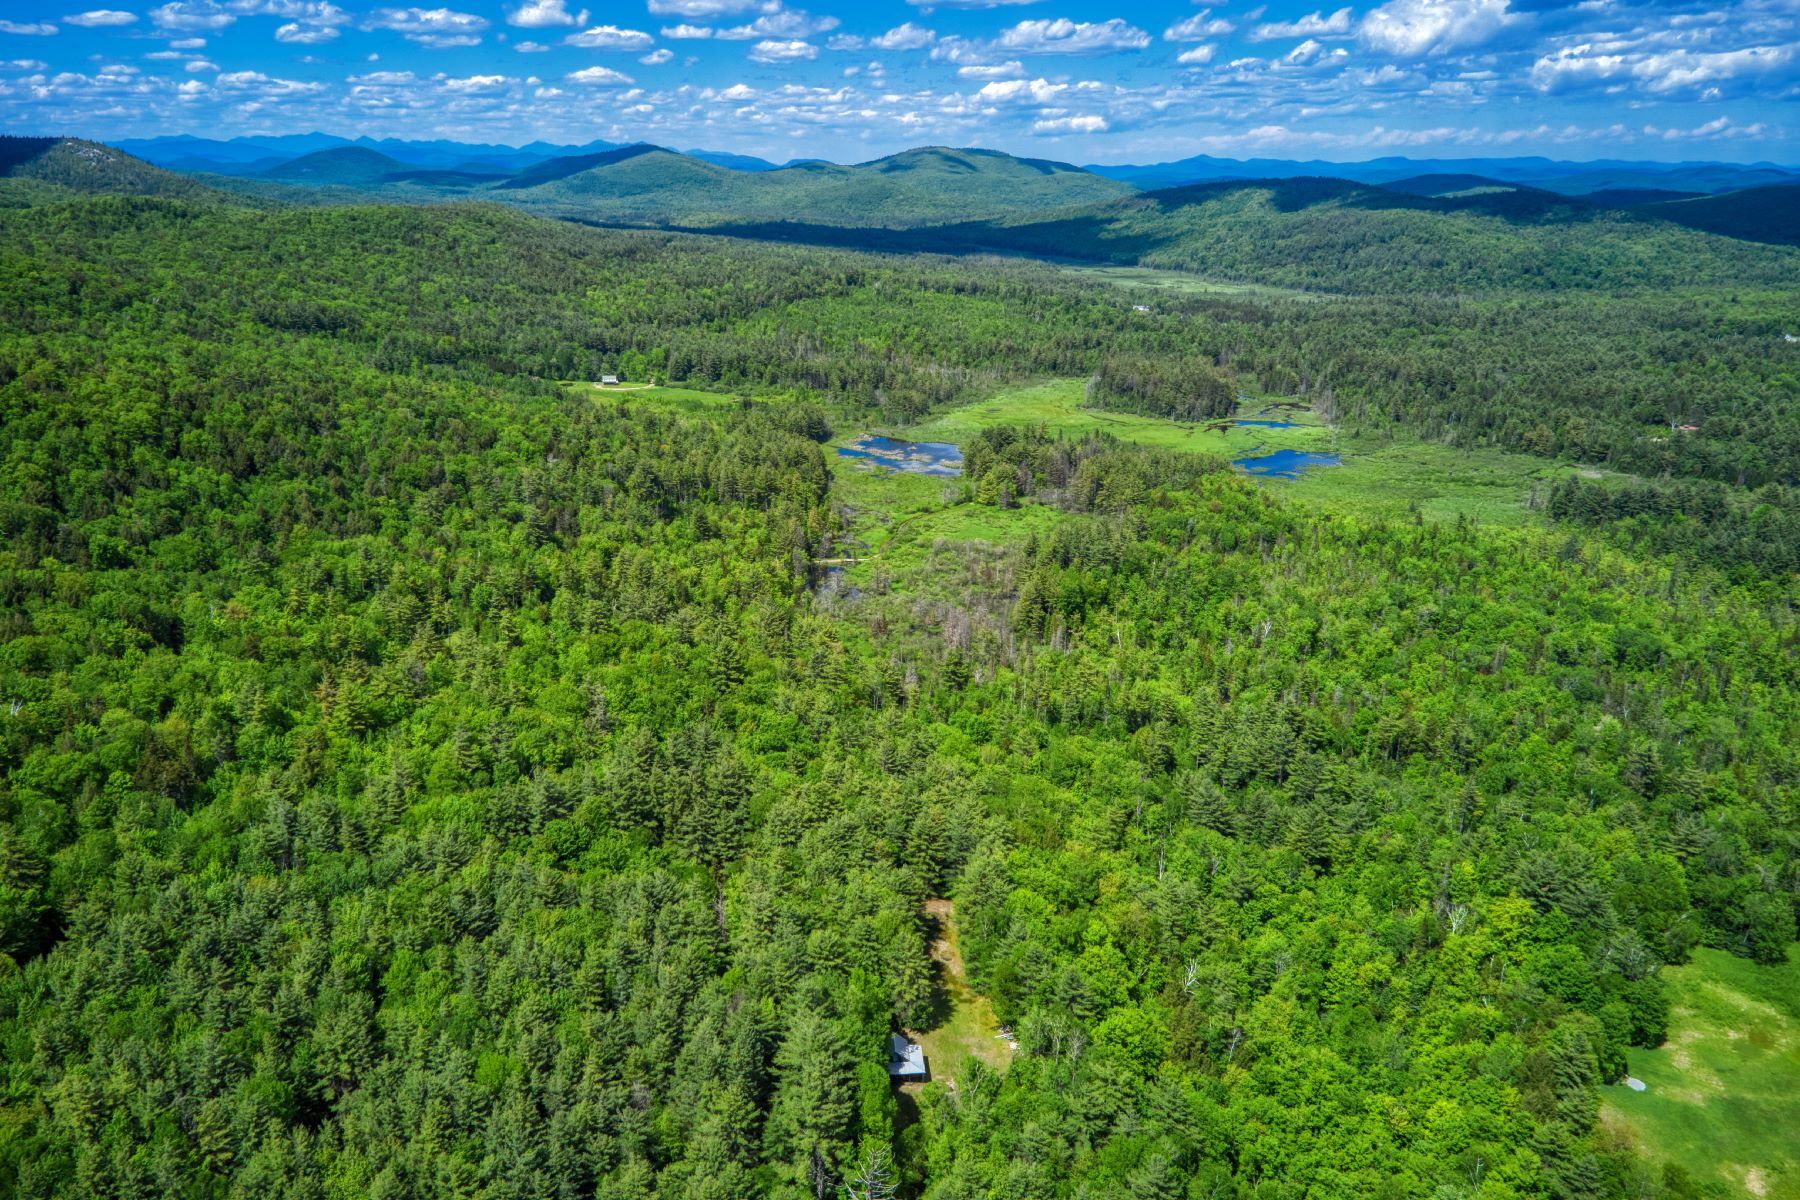 Land for Sale at Crane Mountain Views 0 Garnet Lake Rd South Thurman, New York 12885 United States